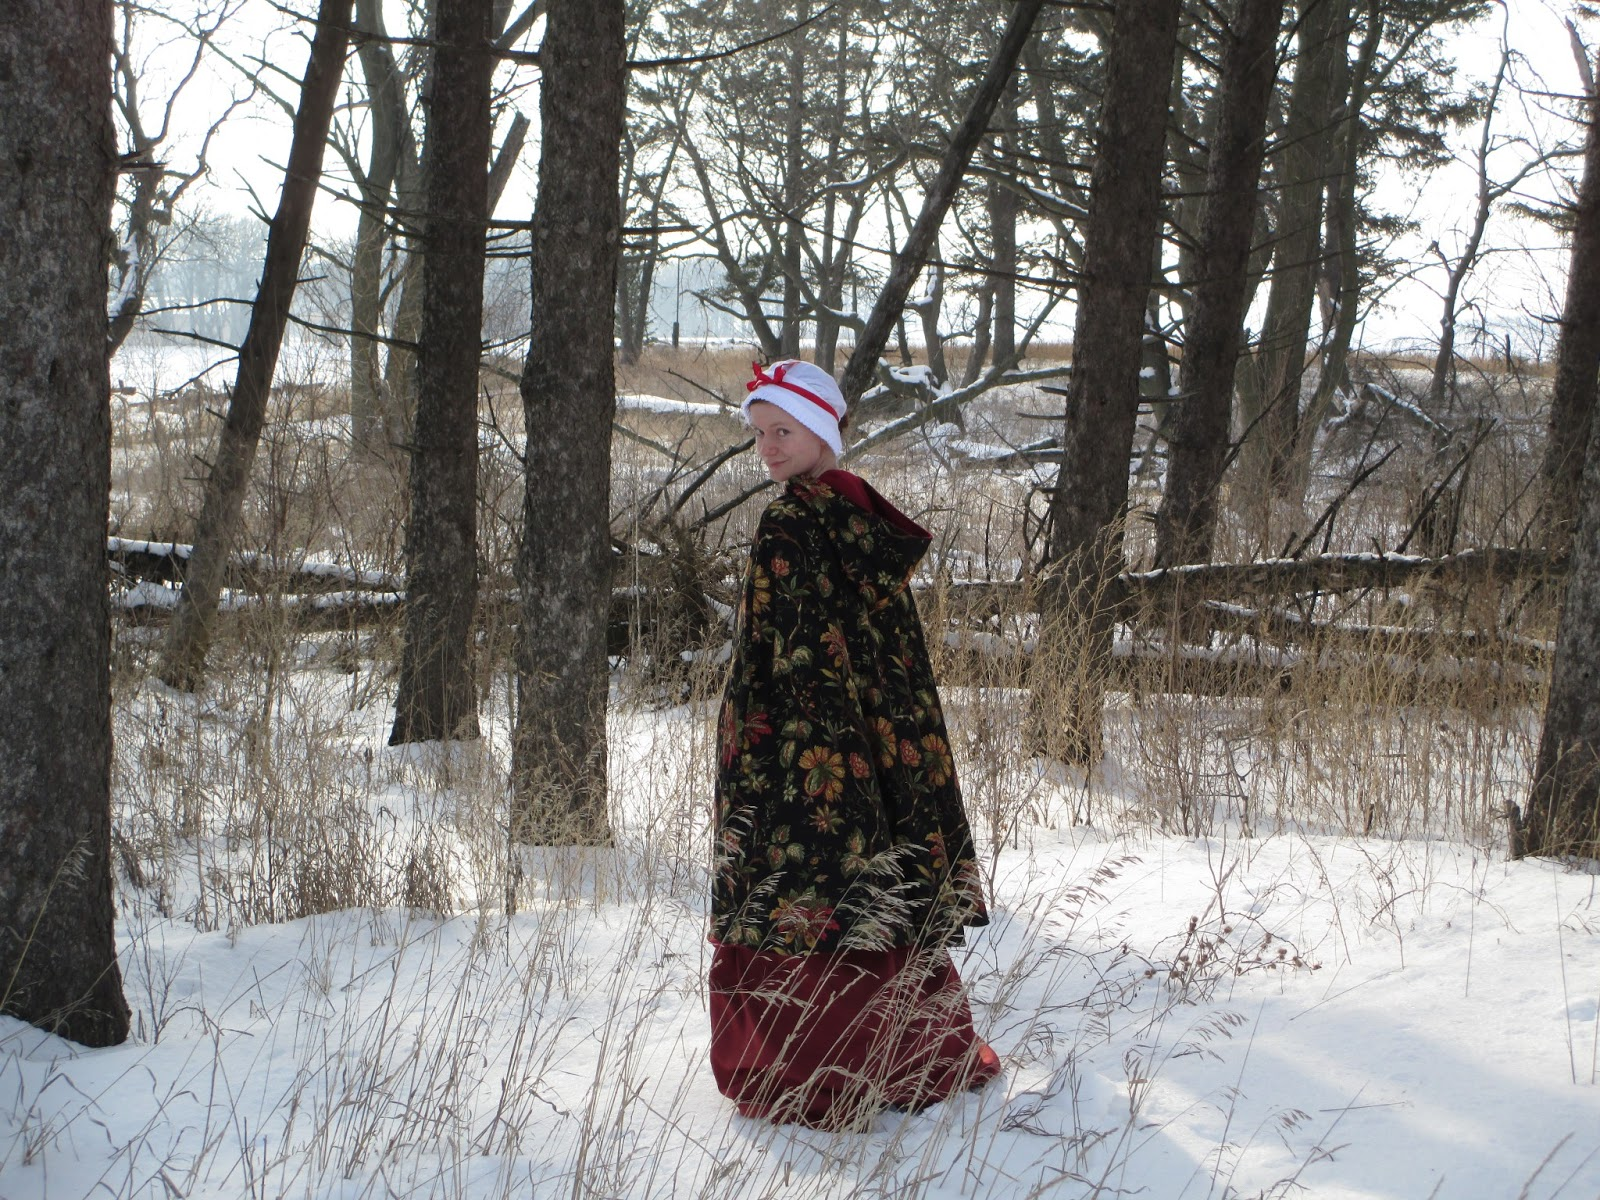 A Sartorial Statement: New Cloak Pics And An Announcement